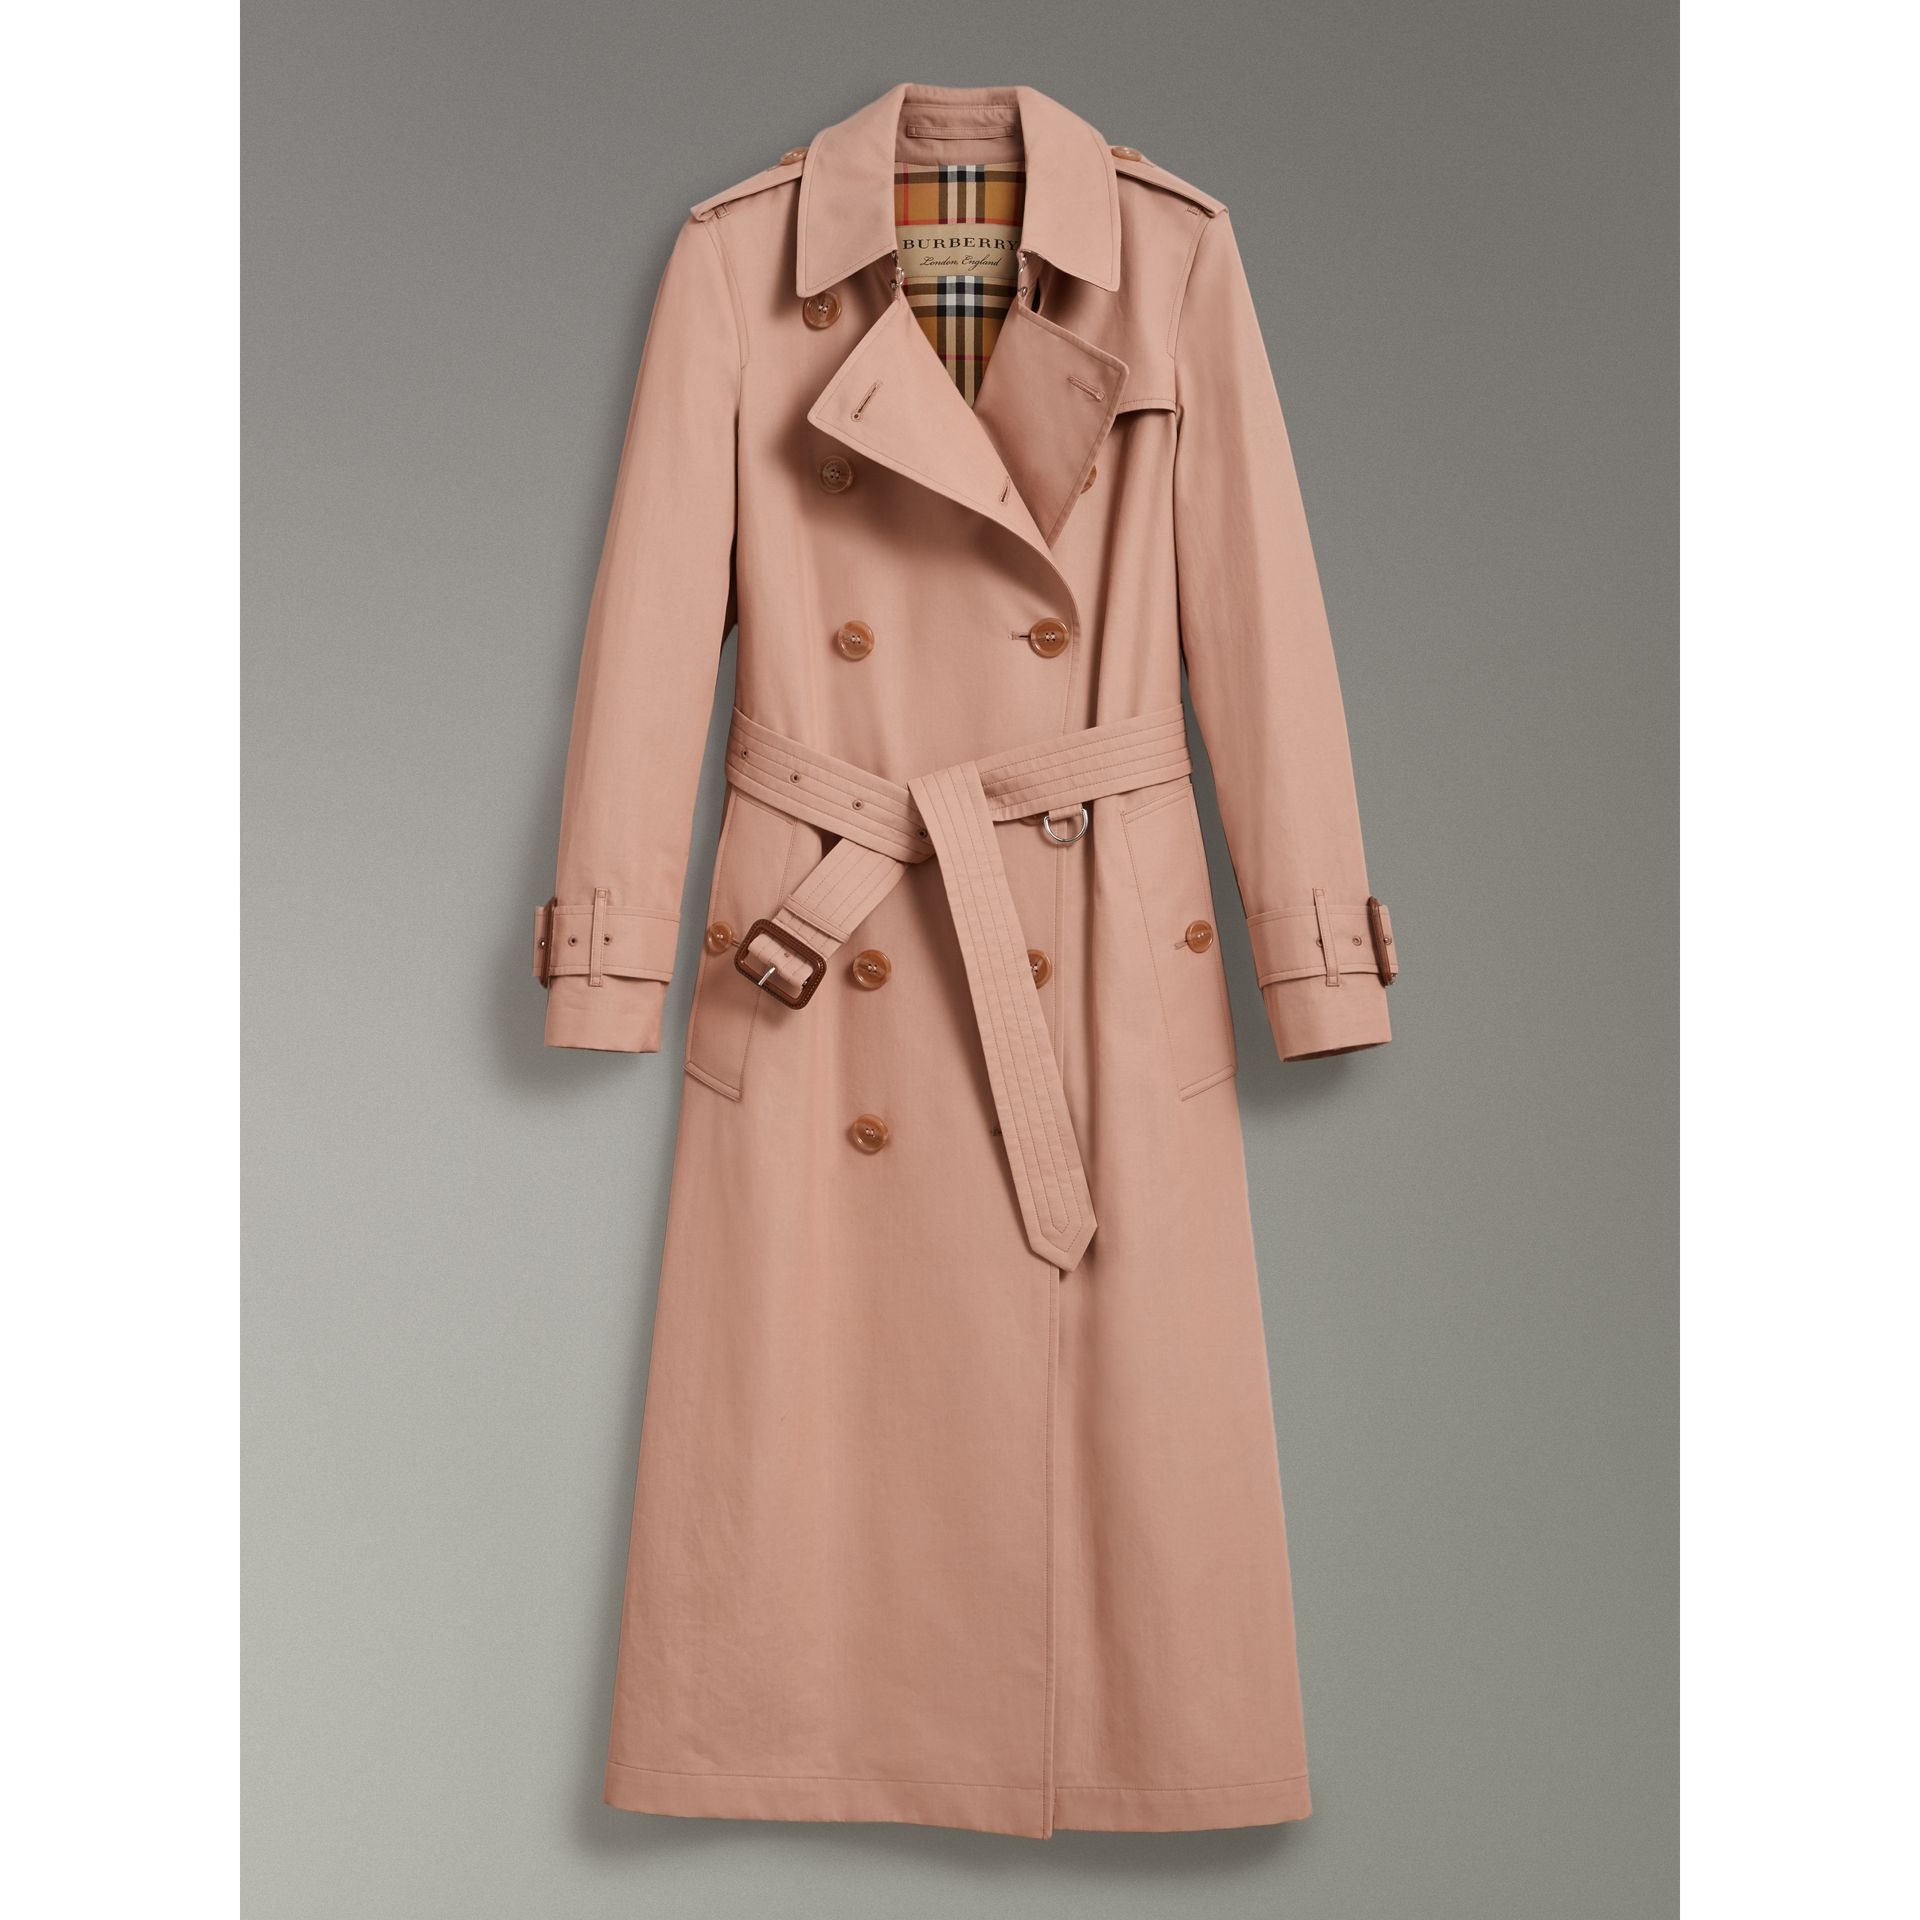 Tropical Gabardine Trench Coat in Pink Apricot - Women | Burberry Australia - gallery image 3